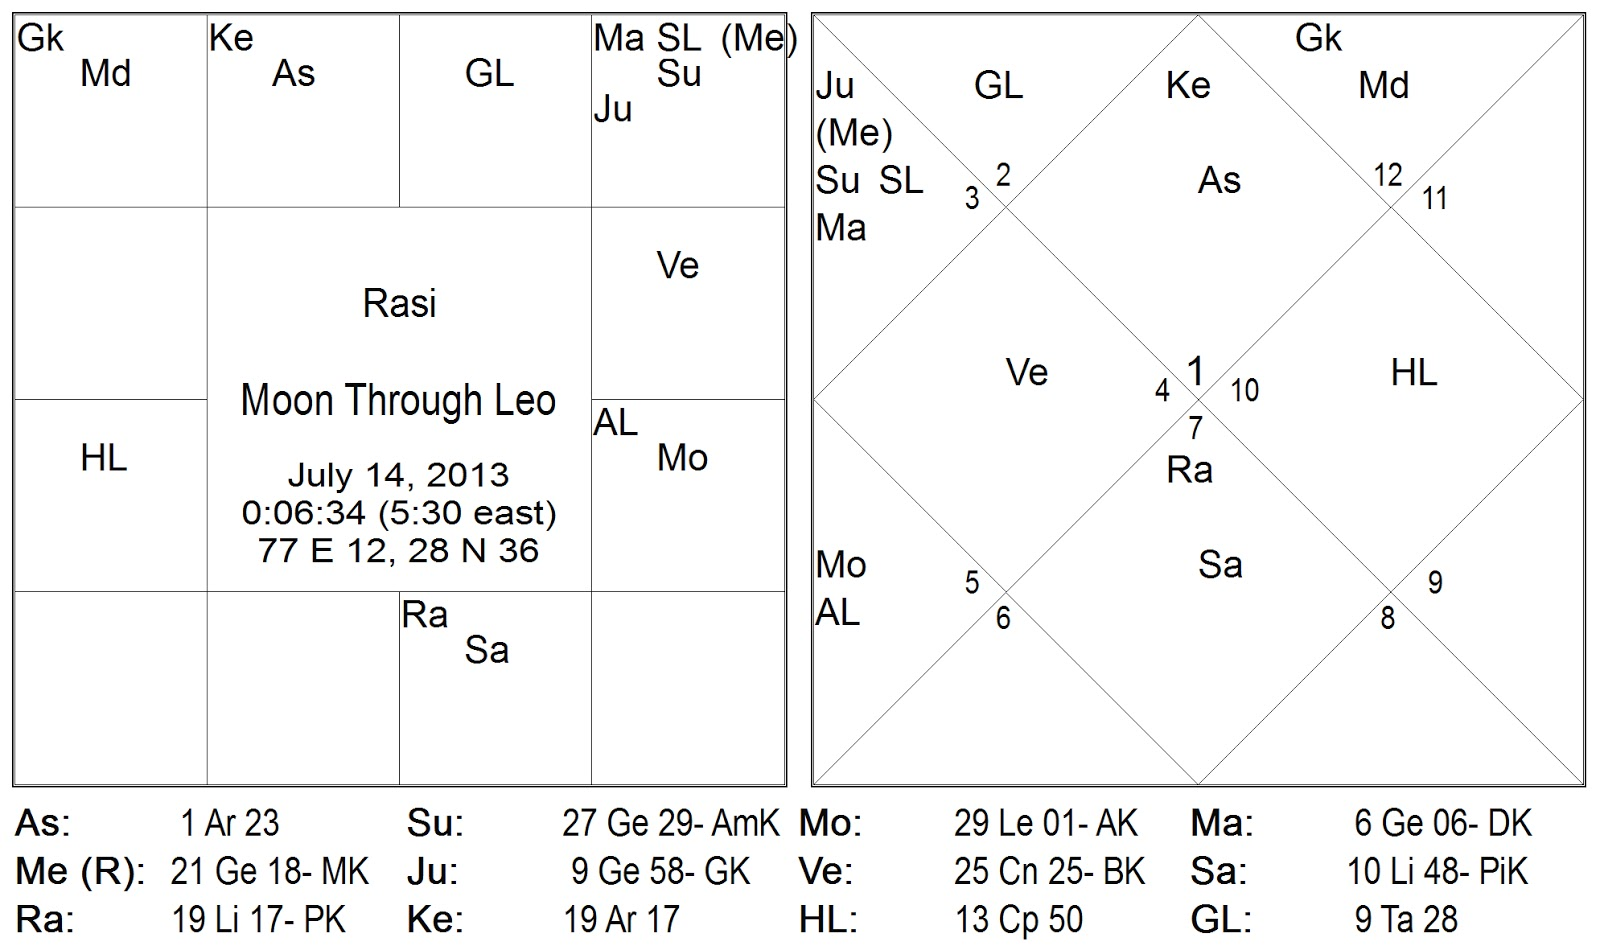 Vedic astrology consultancy research 12th to 16th july 2013 professional vedic hindu indian astrology consulting may see httpplanetarytransformationspot200608choose chart analysis you wantml nvjuhfo Gallery